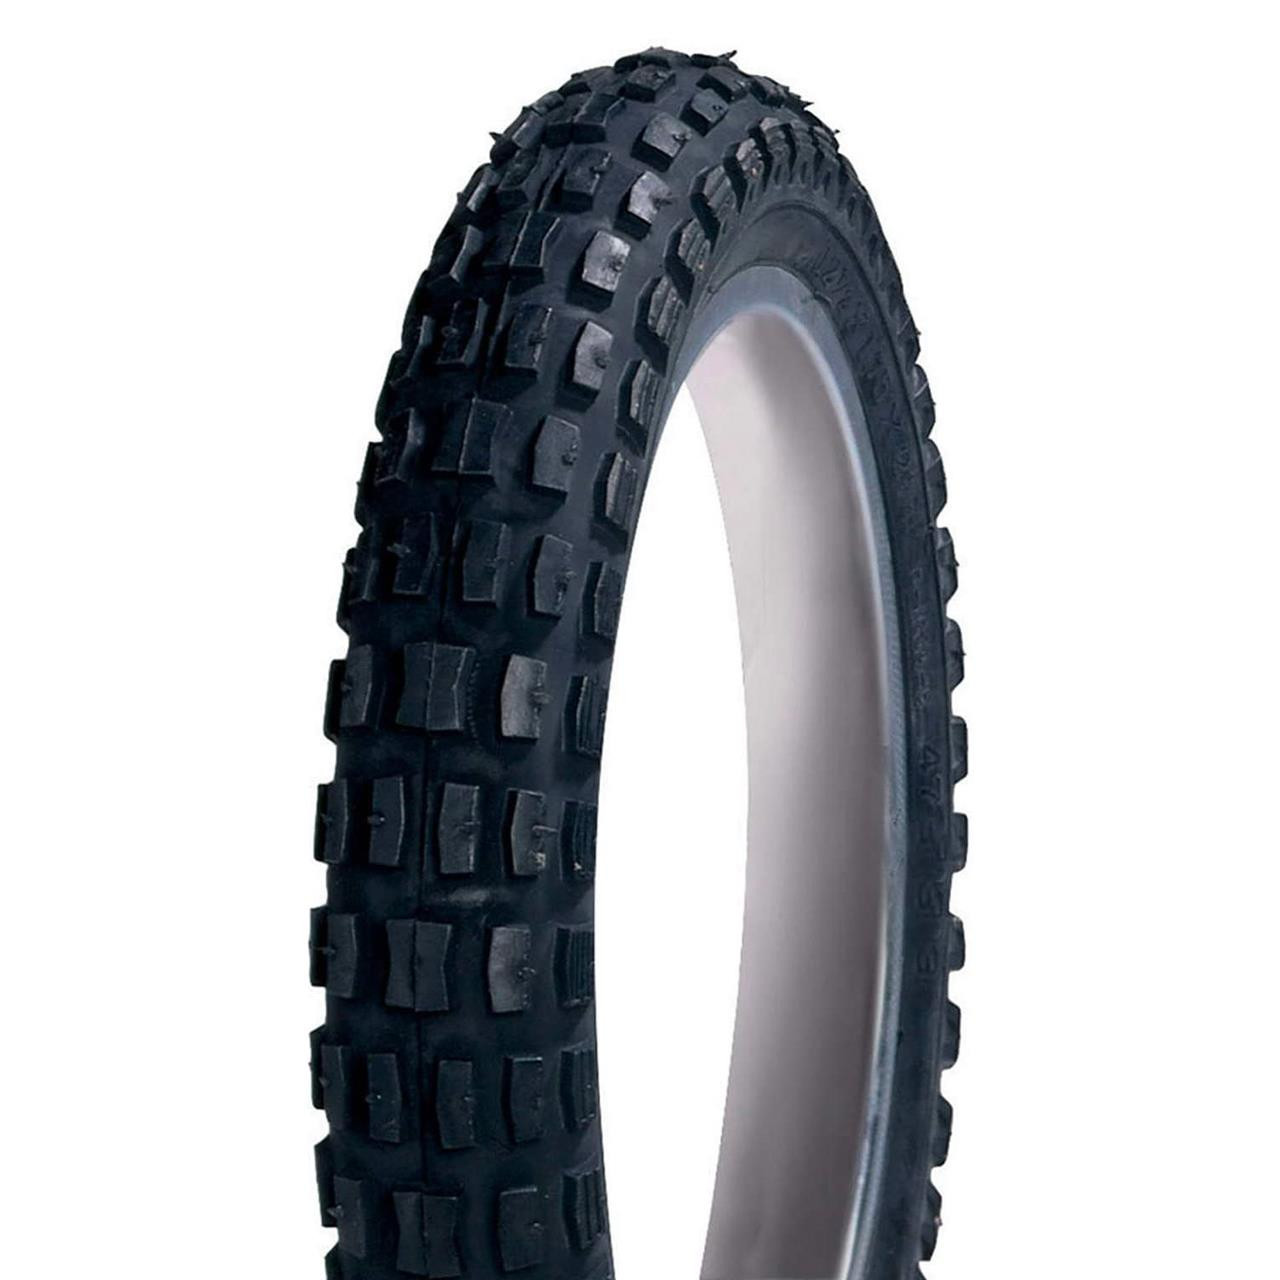 Raleigh T1779 Knobbly Cycle Tyre